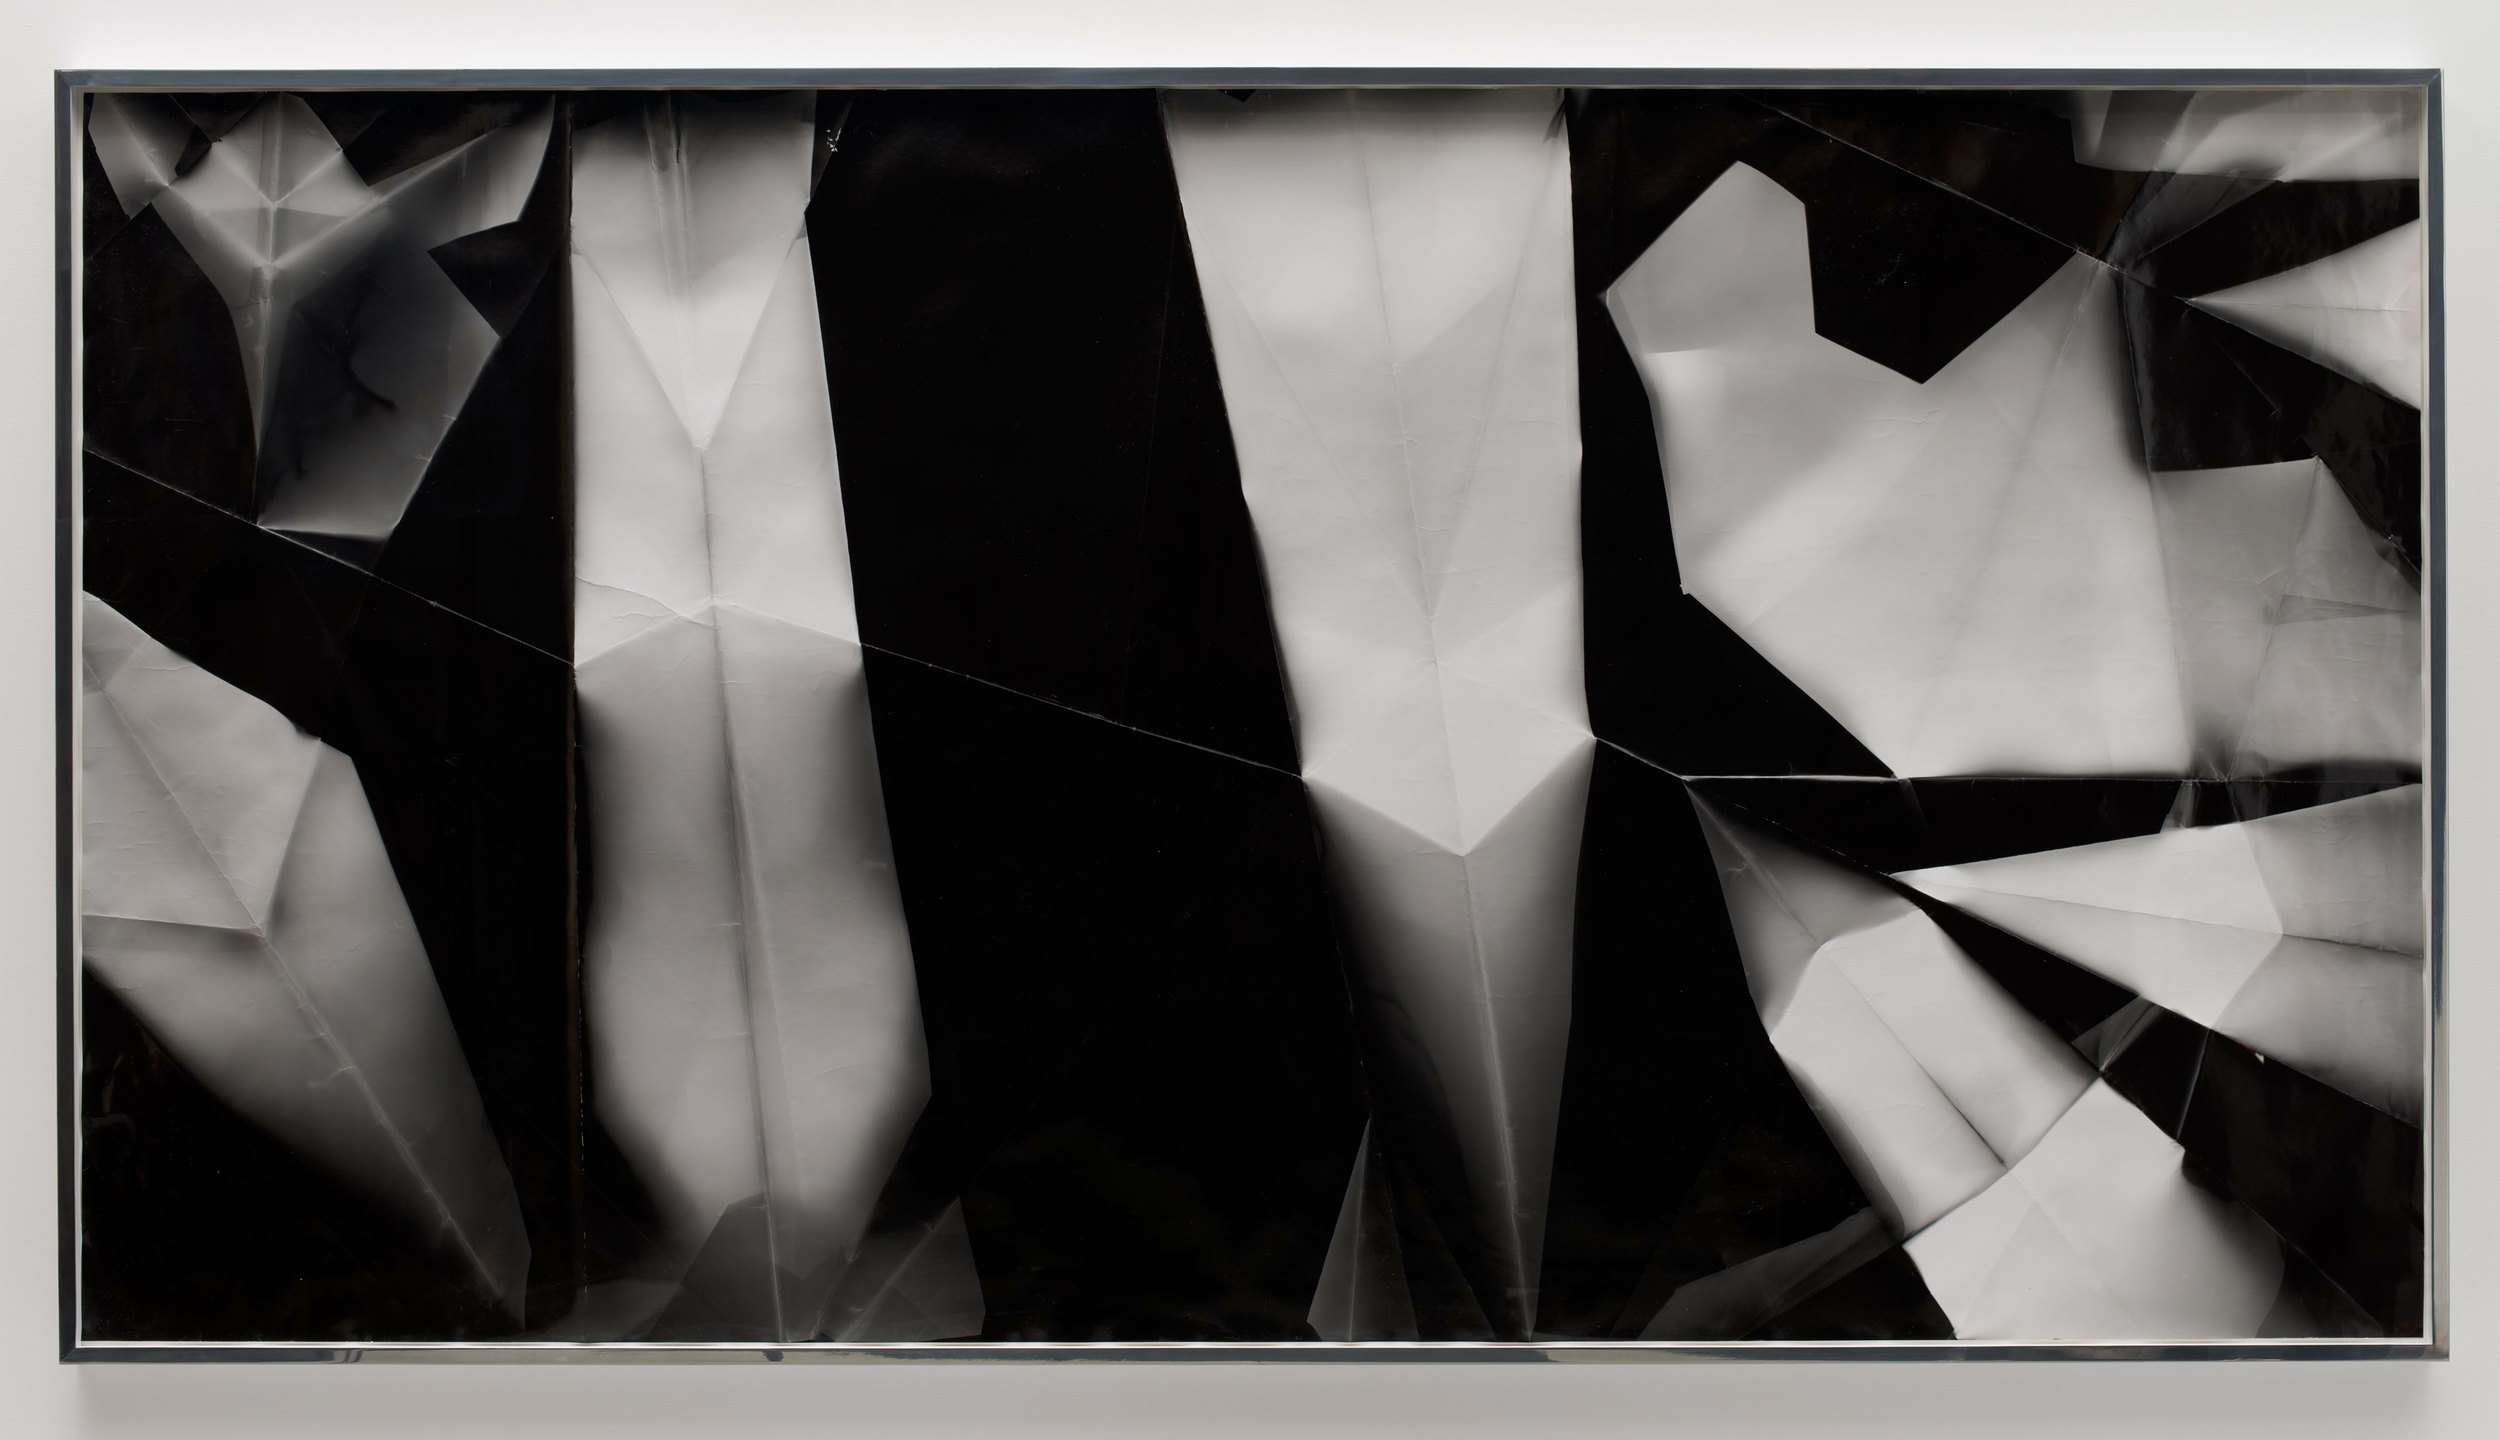 Fold (30º/90º/150º/210º directional light sources), December 31,2012, Los Angeles, California, Ilford Multigrade IV MGF.1K    2012   Black and white fiber based photographic paper  55 x 106 1/2 inches